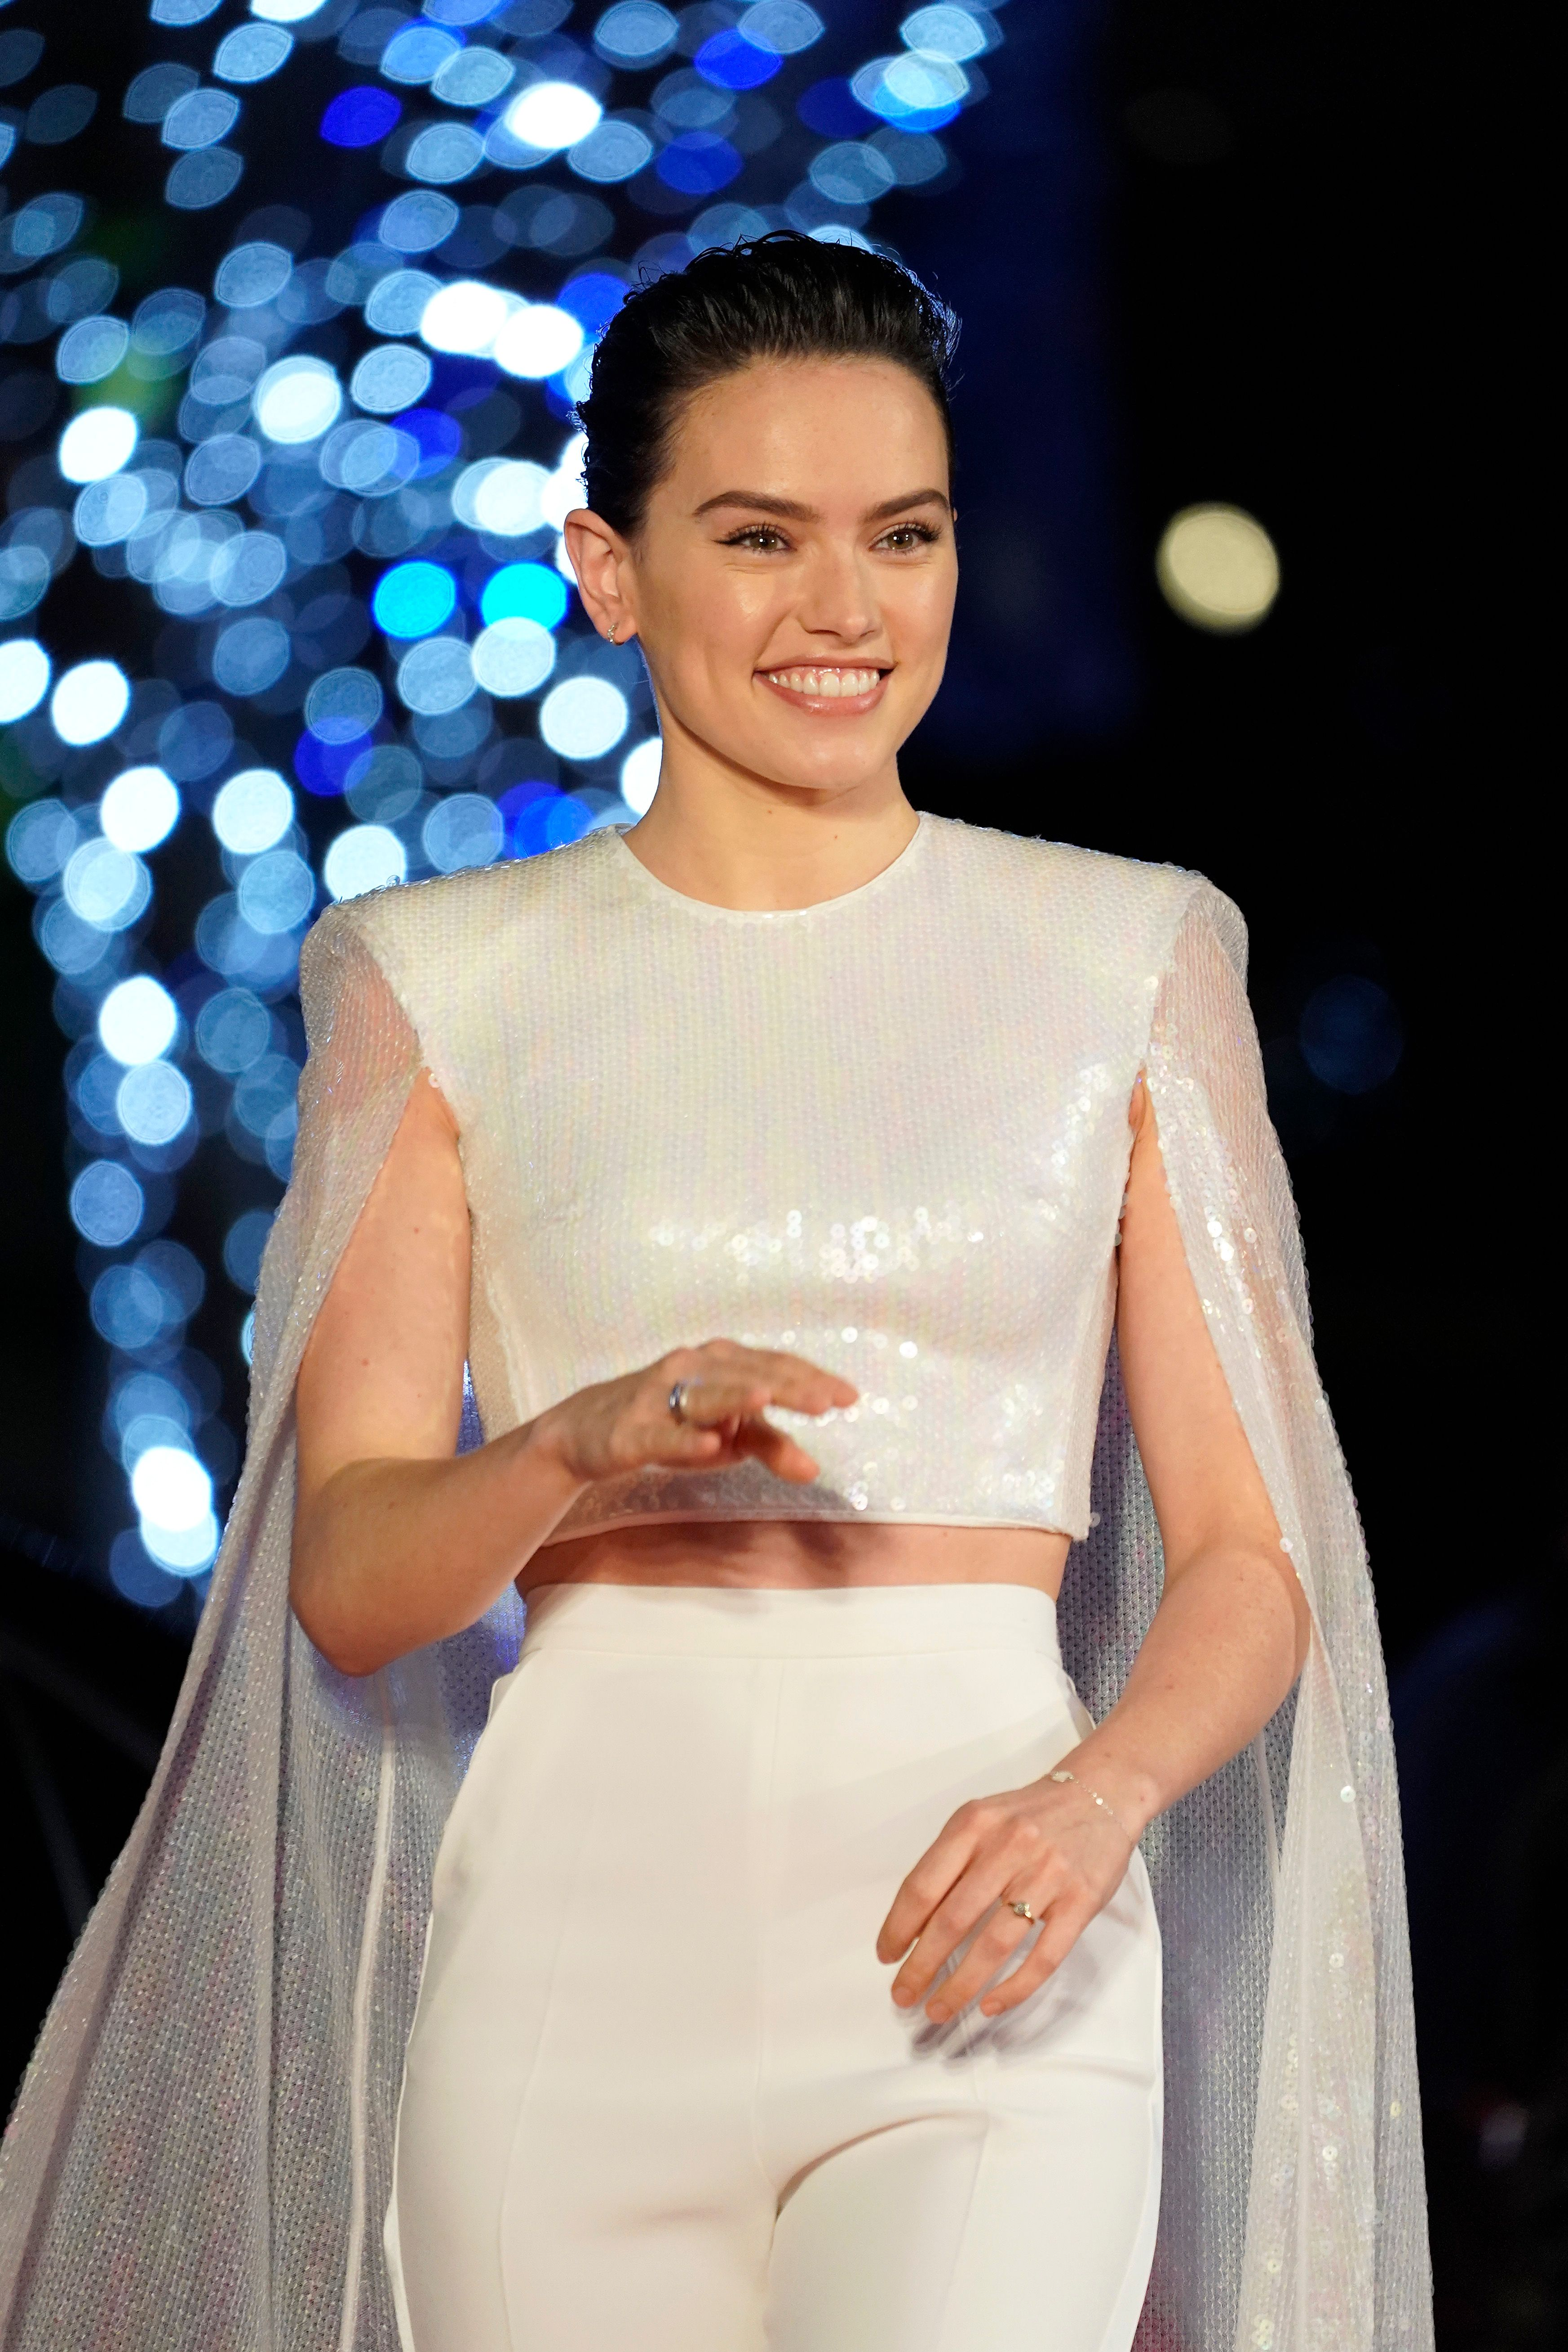 Daisy Ridley in white ensemble at special event